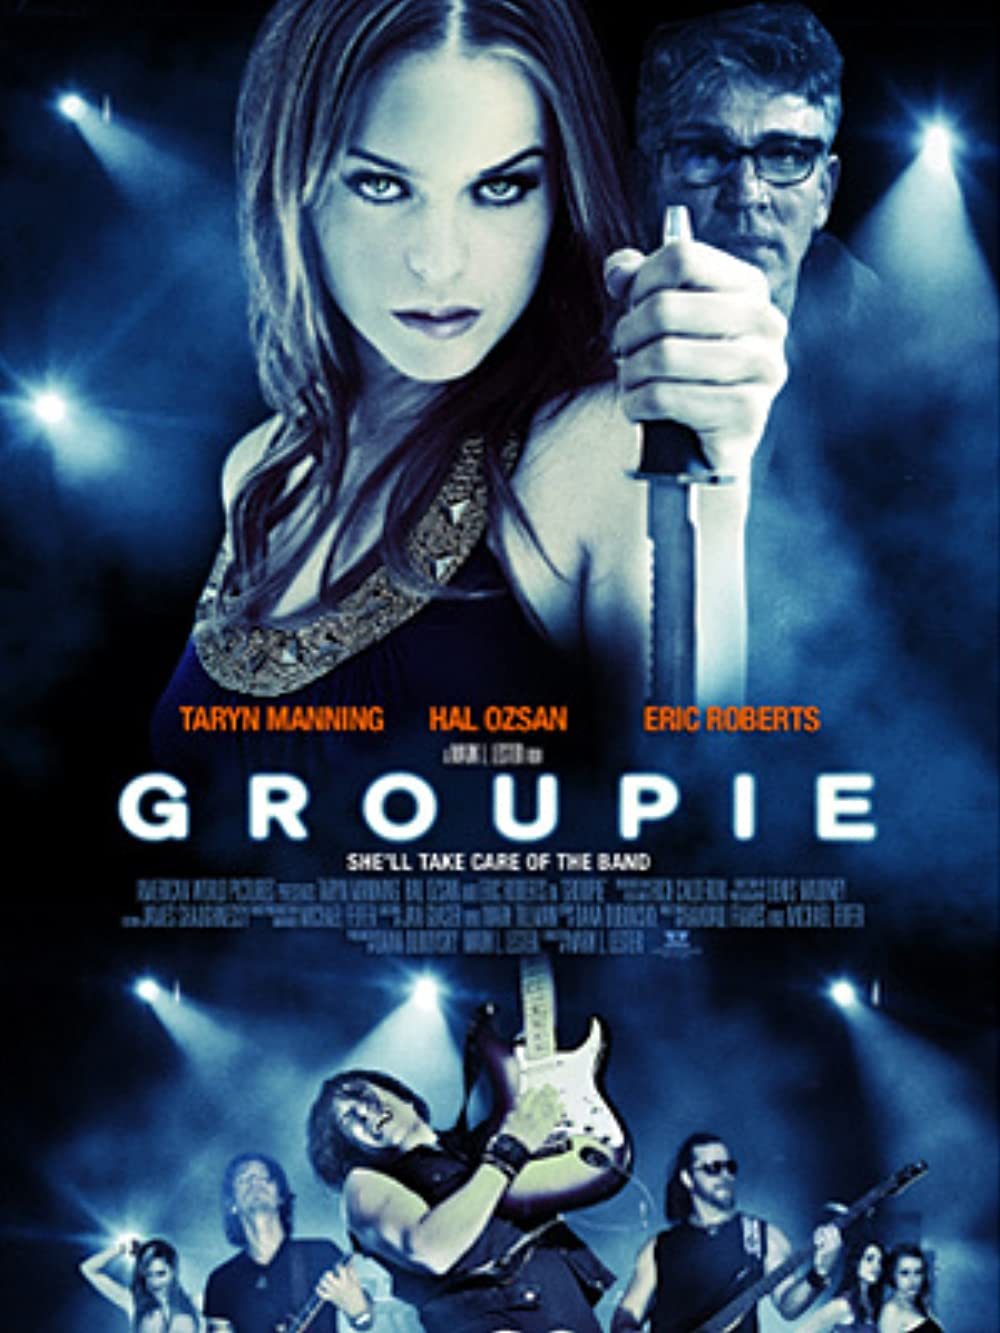 18+ Groupie 2010 Hindi Dual Audio 720p UNCUT BluRay 1.1GB x264 AAC